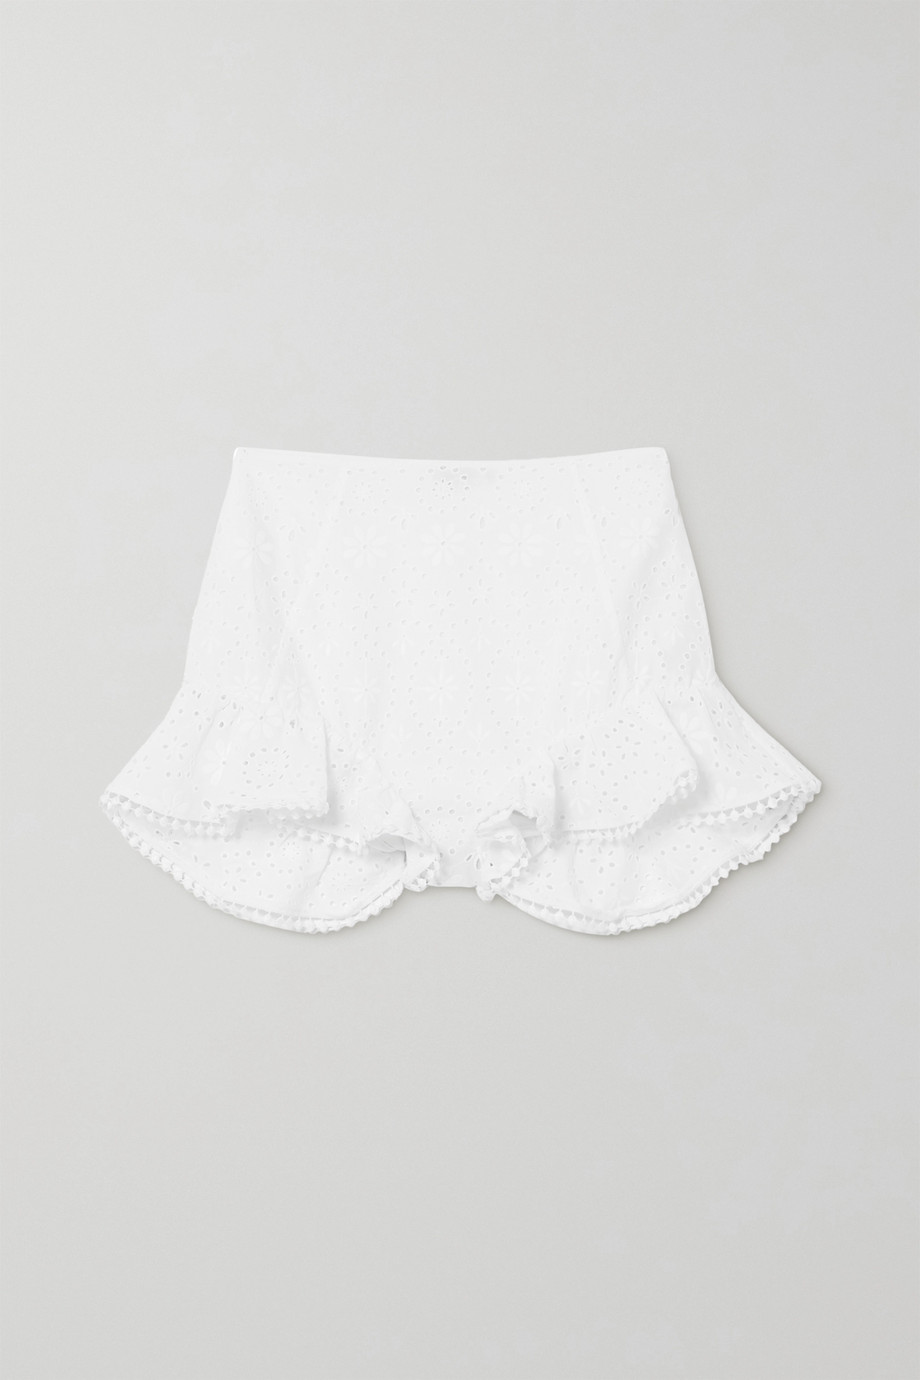 Charo Ruiz Saza crocheted lace-trimmed broderie anglaise cotton-blend shorts